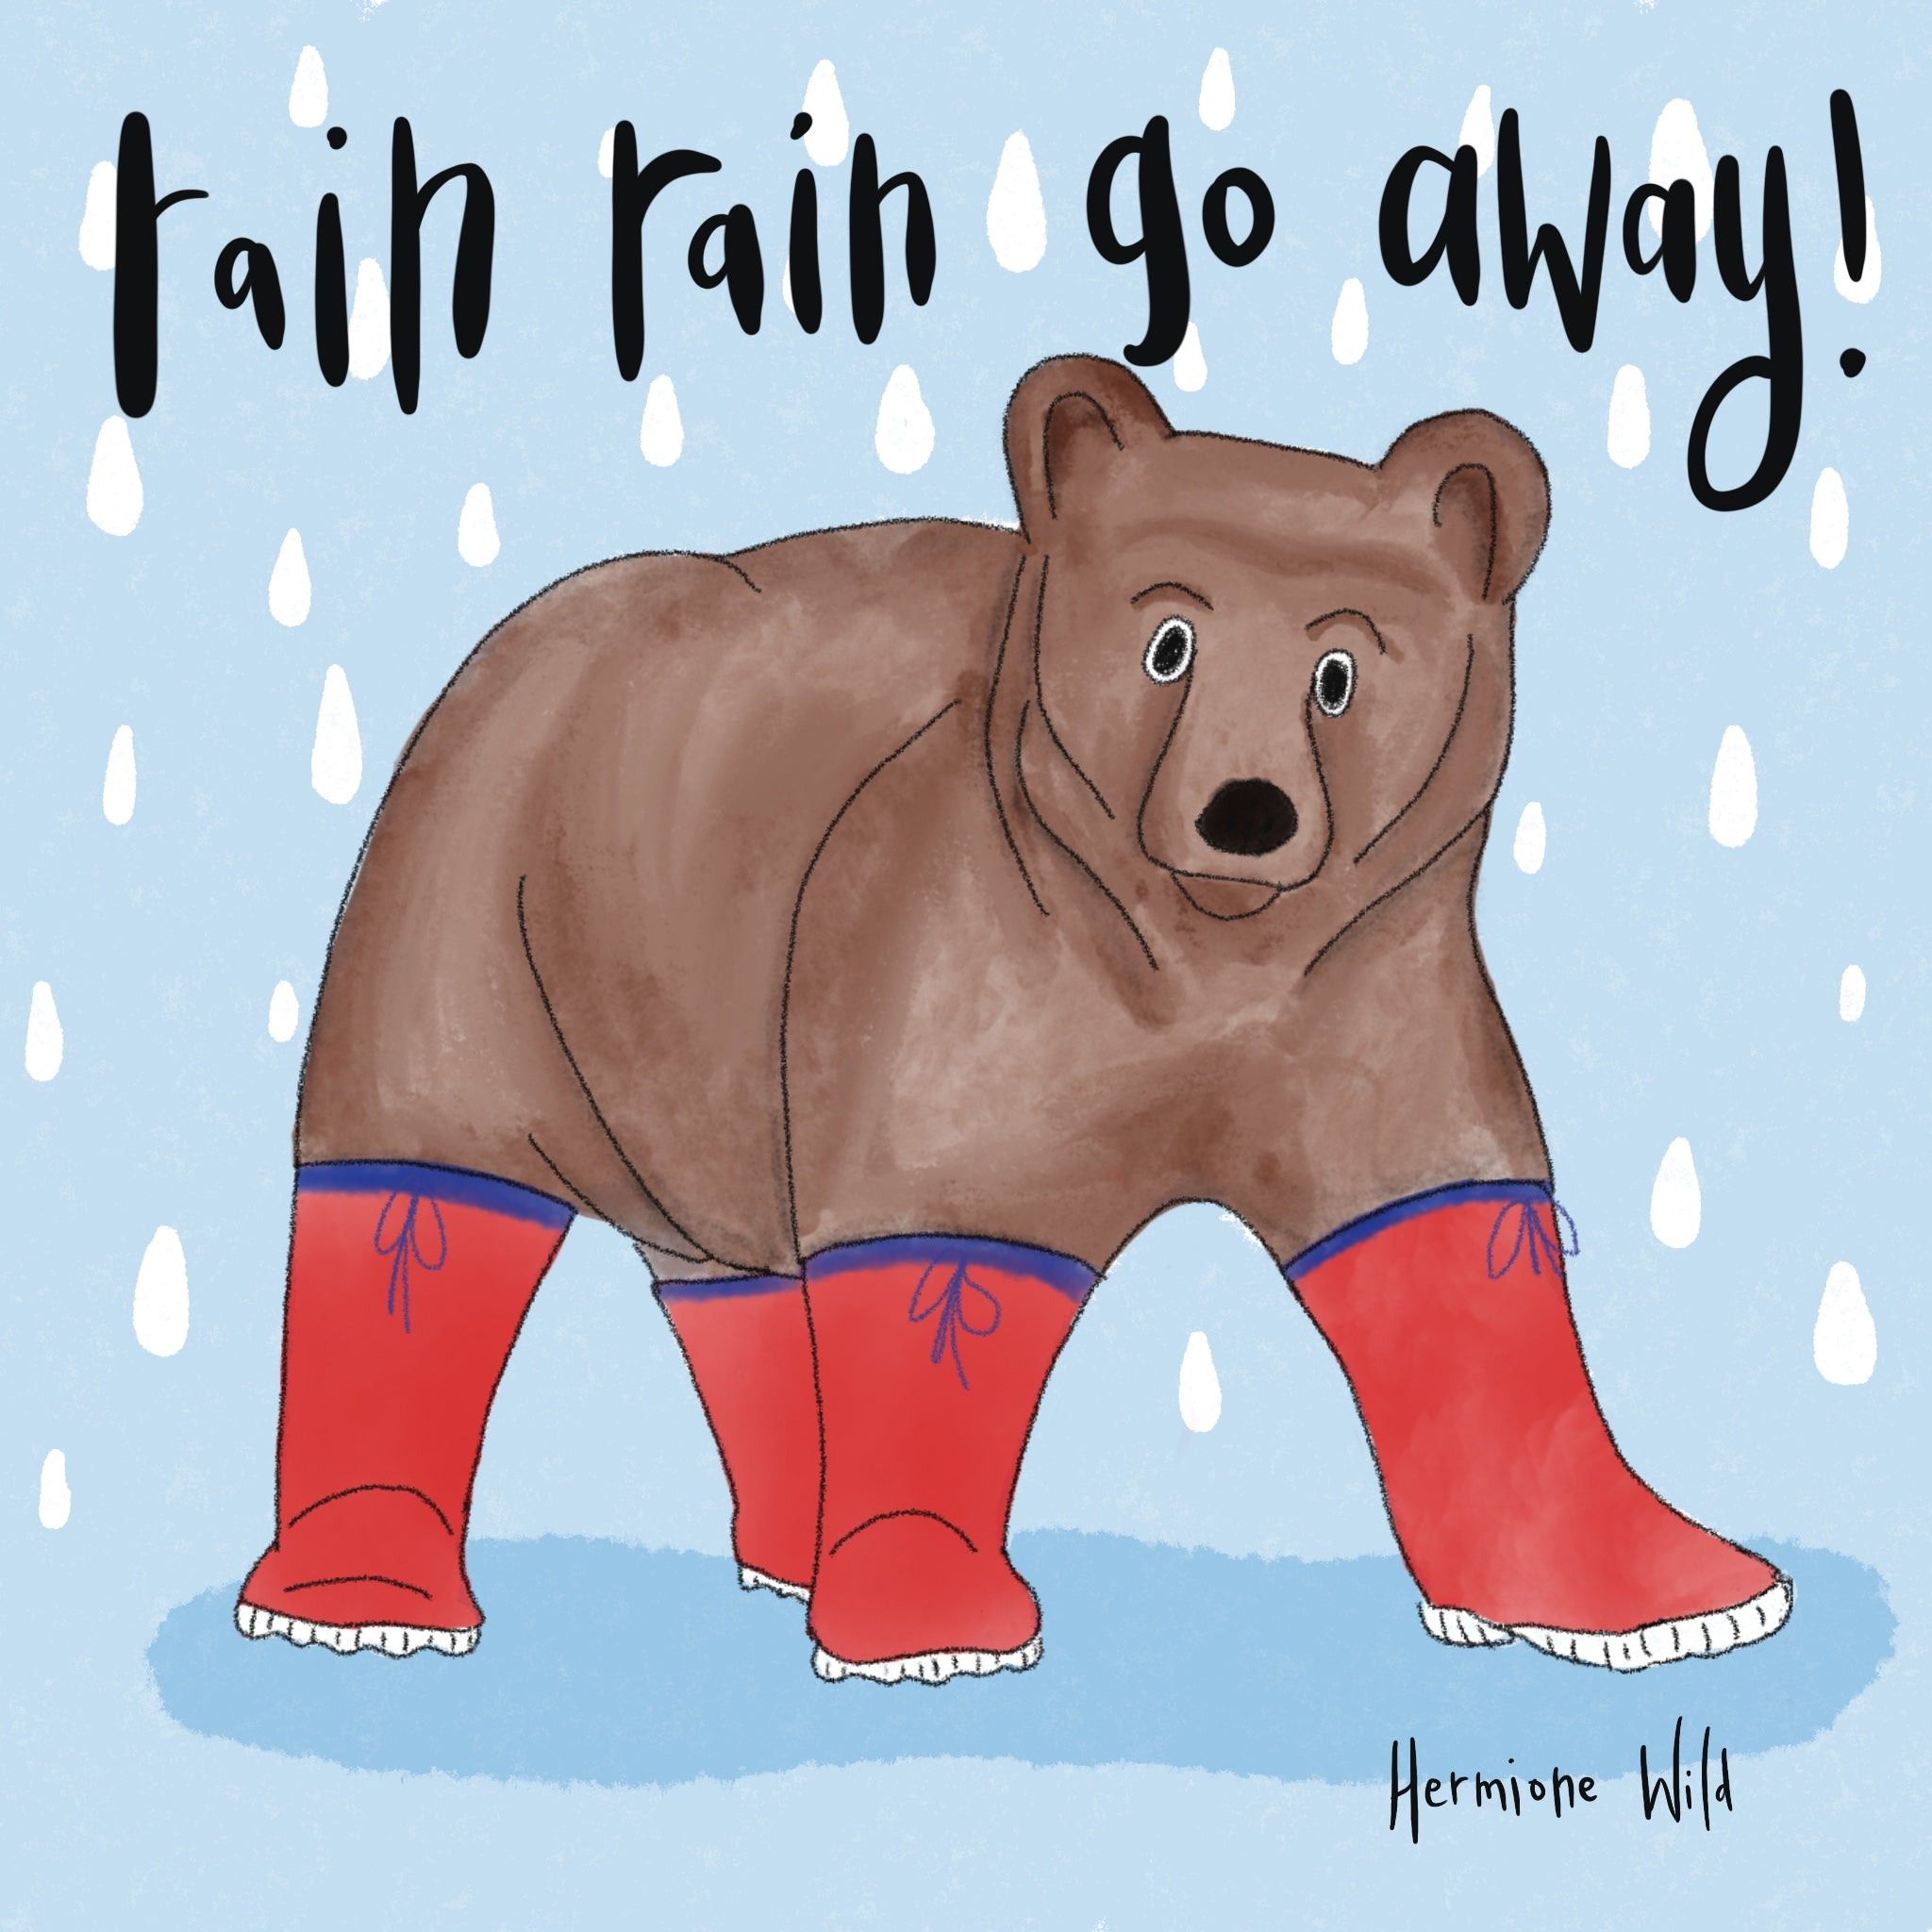 Bear wearing wellies in the rain. Quote says 'rain, rain, go away'